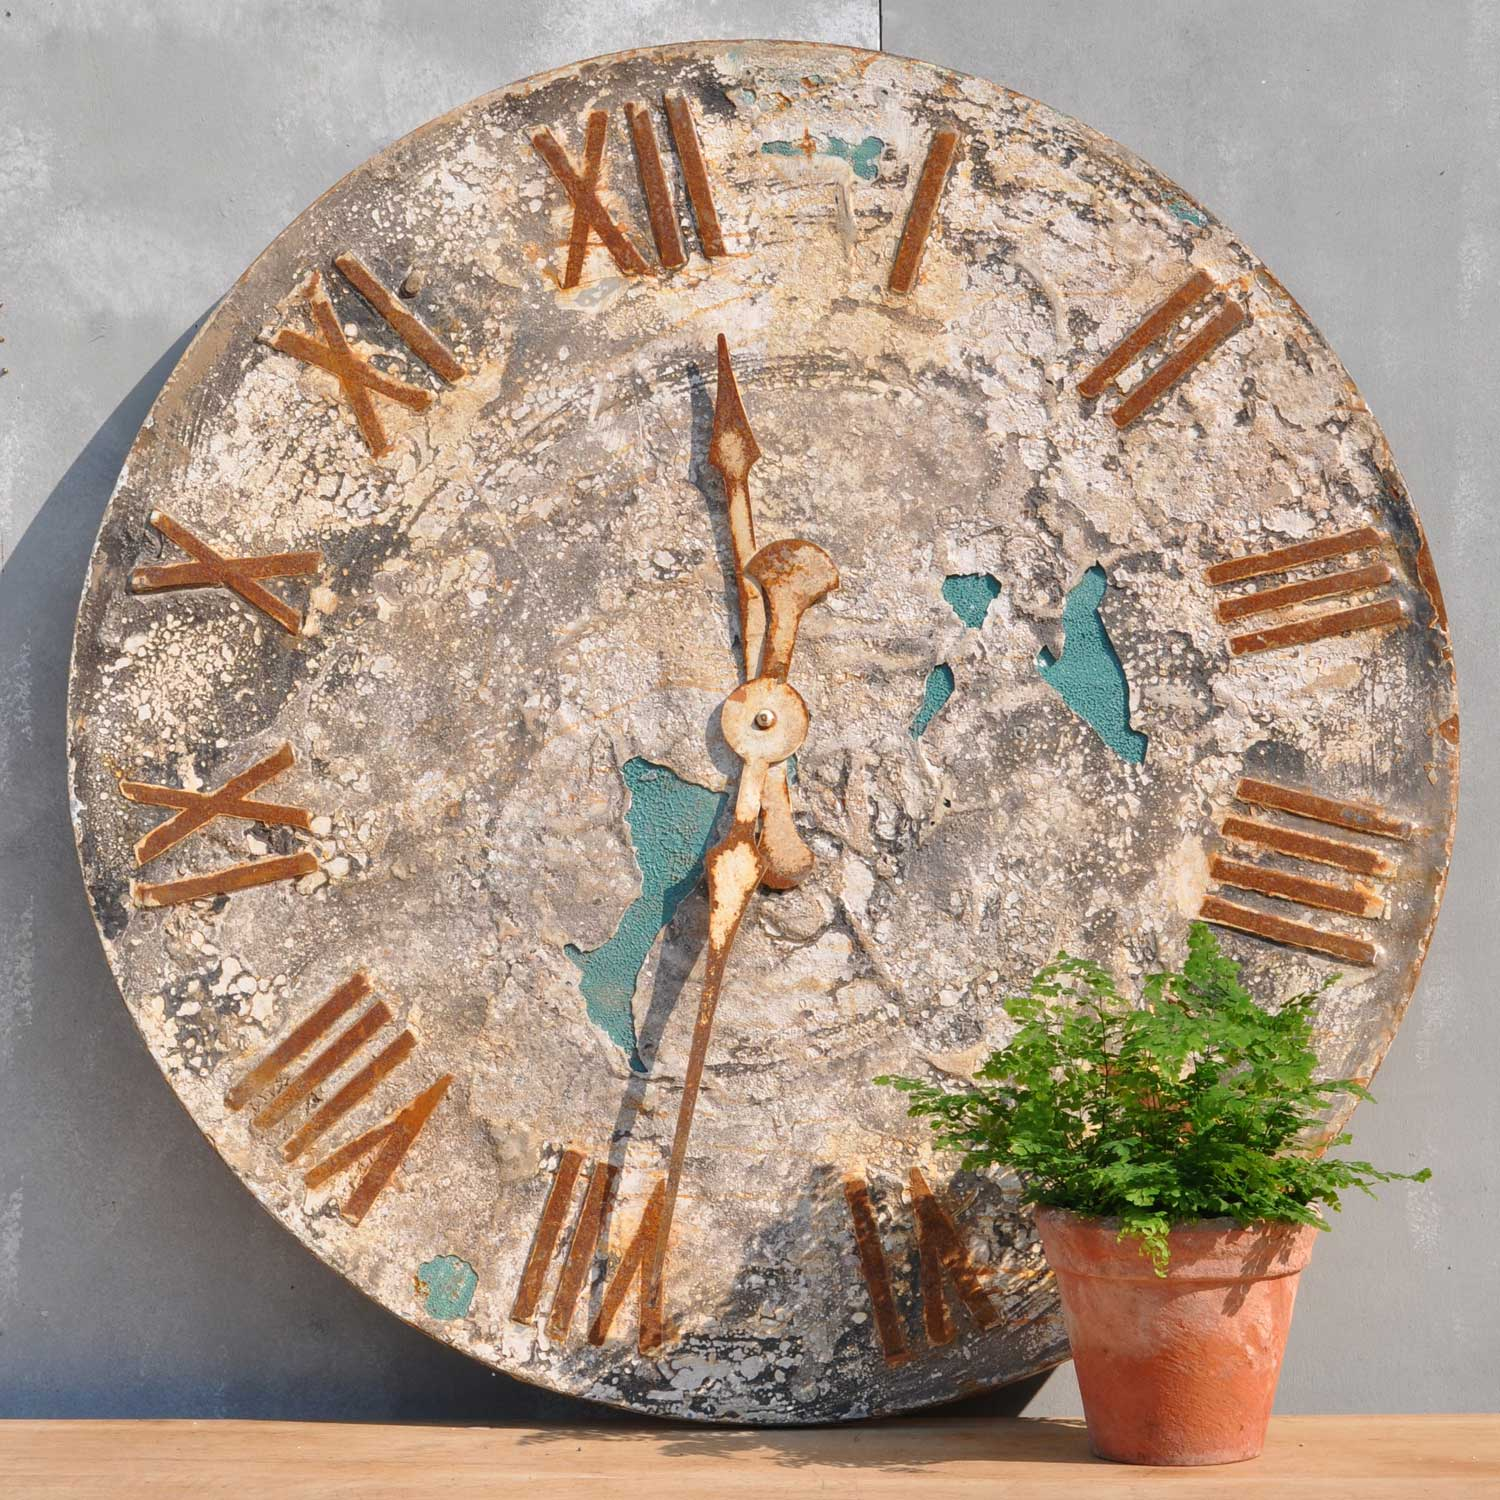 Decorative Folk Art Style Rustic Clock Face Artwork